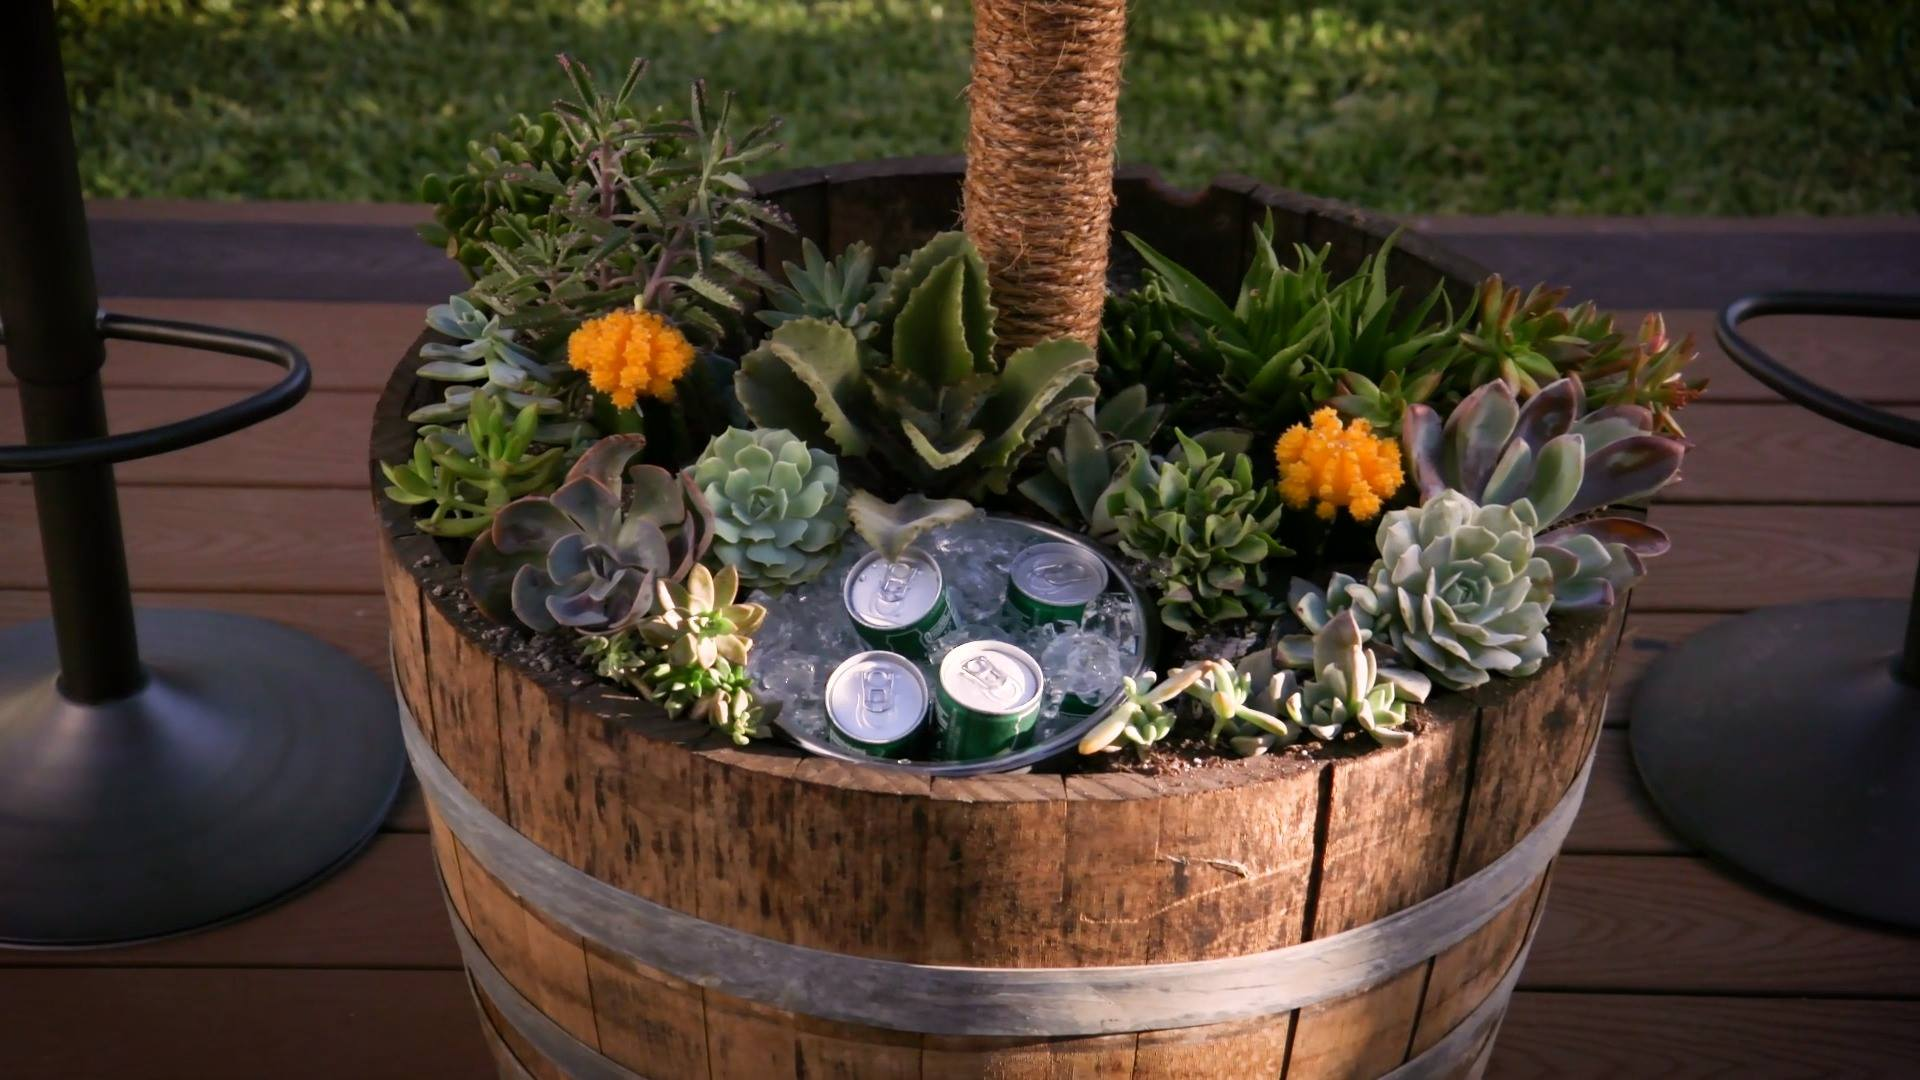 Rustic Barrel Table With Built-In Succulents